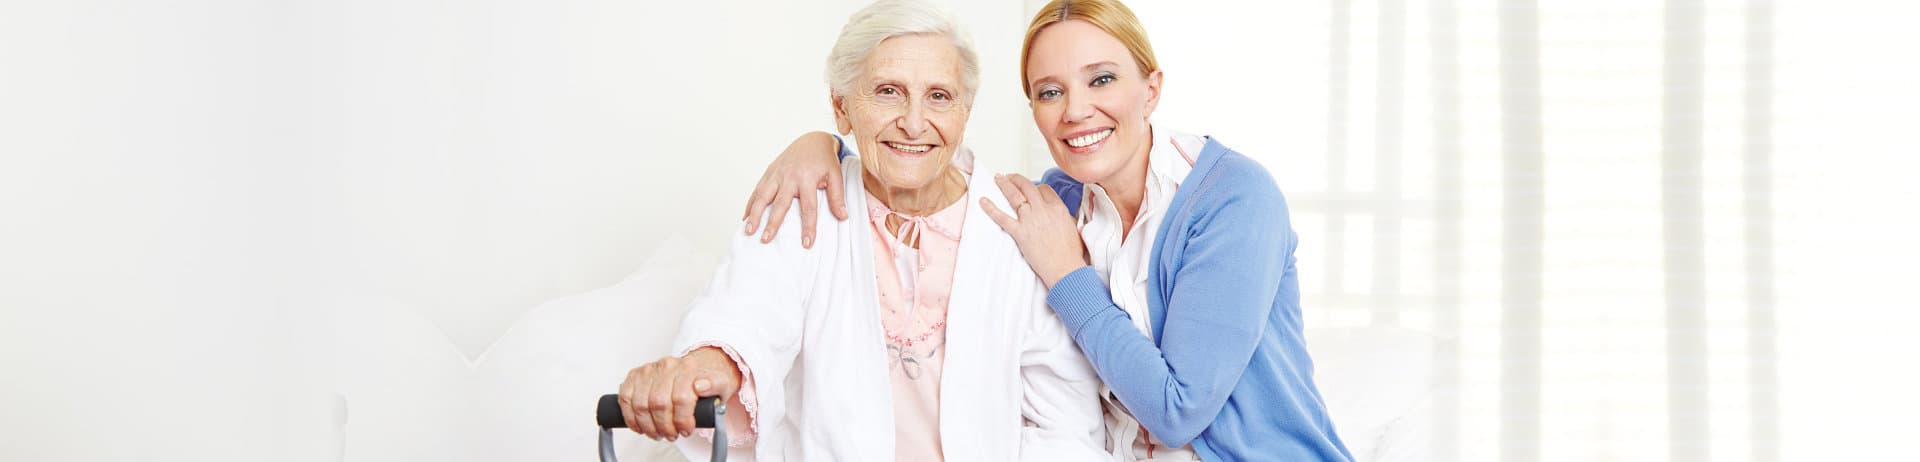 senior woman smiling with her caregiver